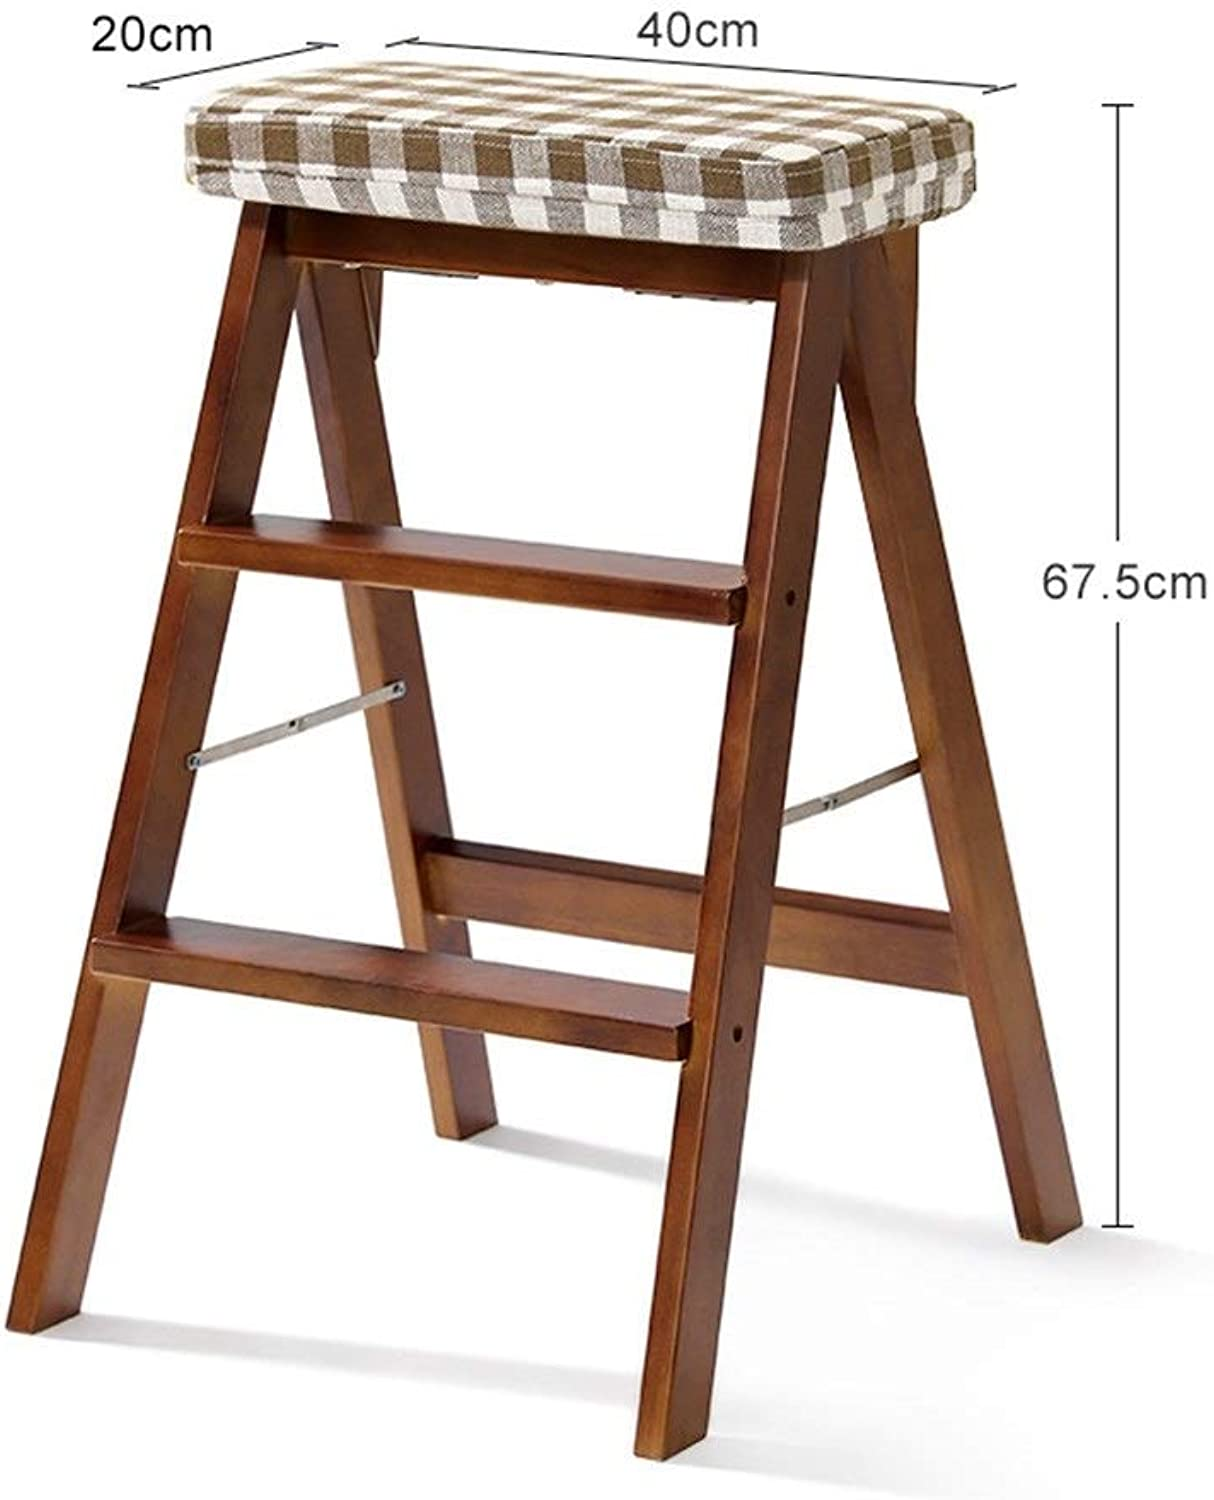 GLJJQMY Solid Wood Folding Stool Home Step Stool Portable Folding Stool Multi-Function Kitchen High Stool Wooden Bench (color   D)